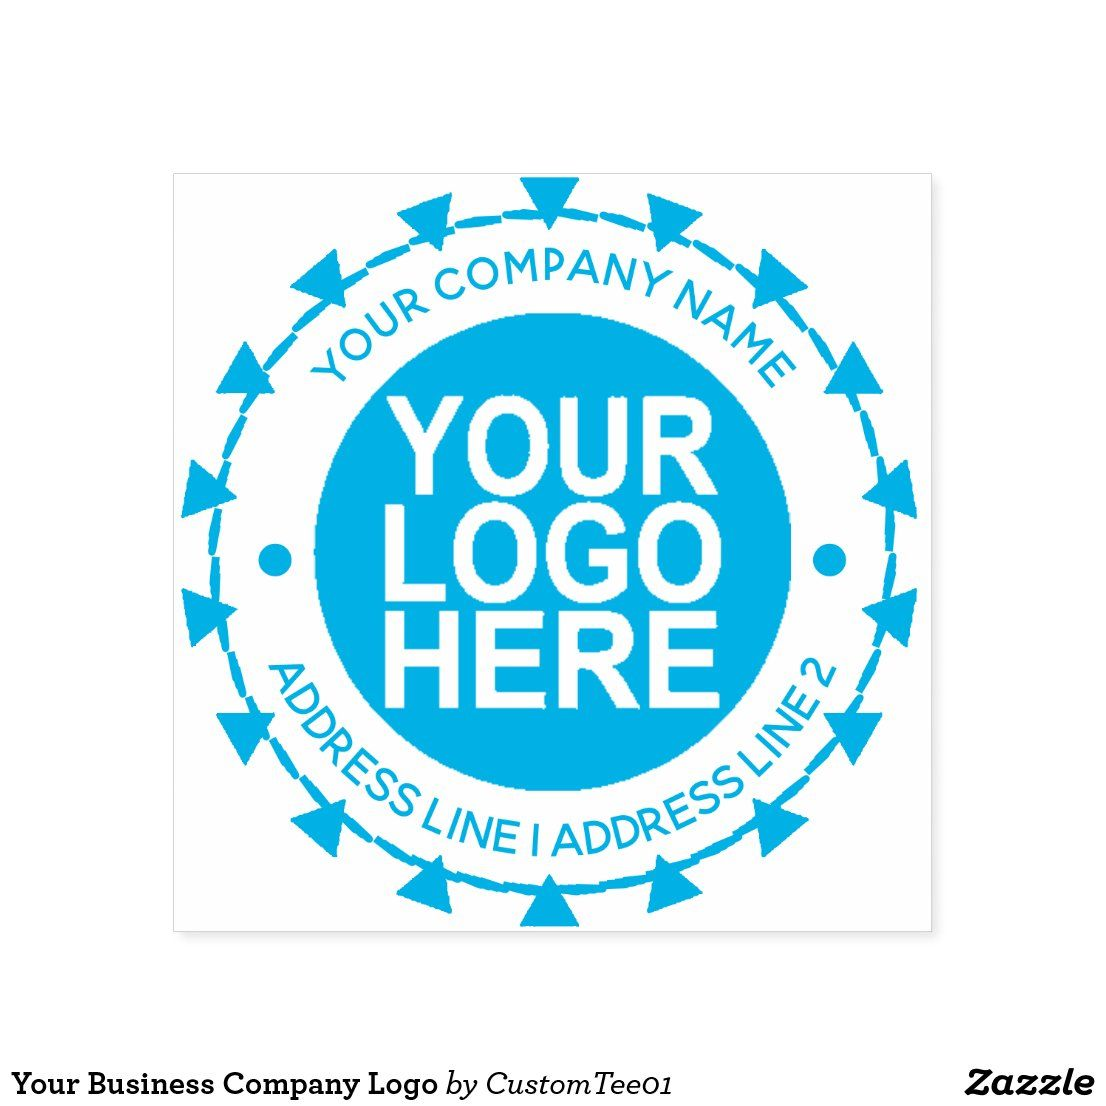 Your Business Company Logo Self Inking Stamp Zazzle Com Custom Stamp Logo Self Inking Stamps Business Stamps